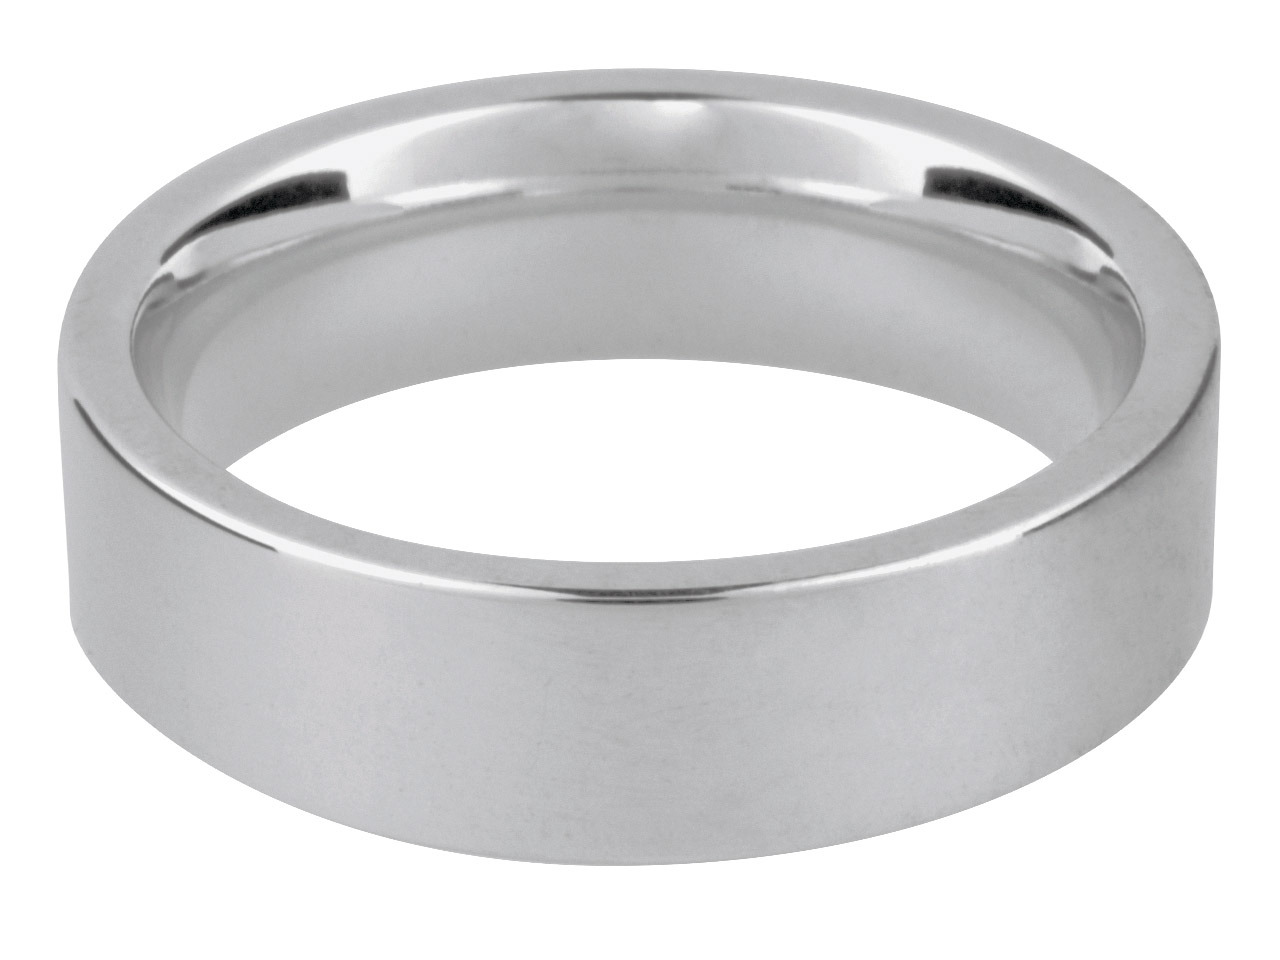 9ct White Easy Fit Wedding Ring    2.0mm I 1.9gms Medium Weight       Hallmarked Wall Thickness 1.44mm